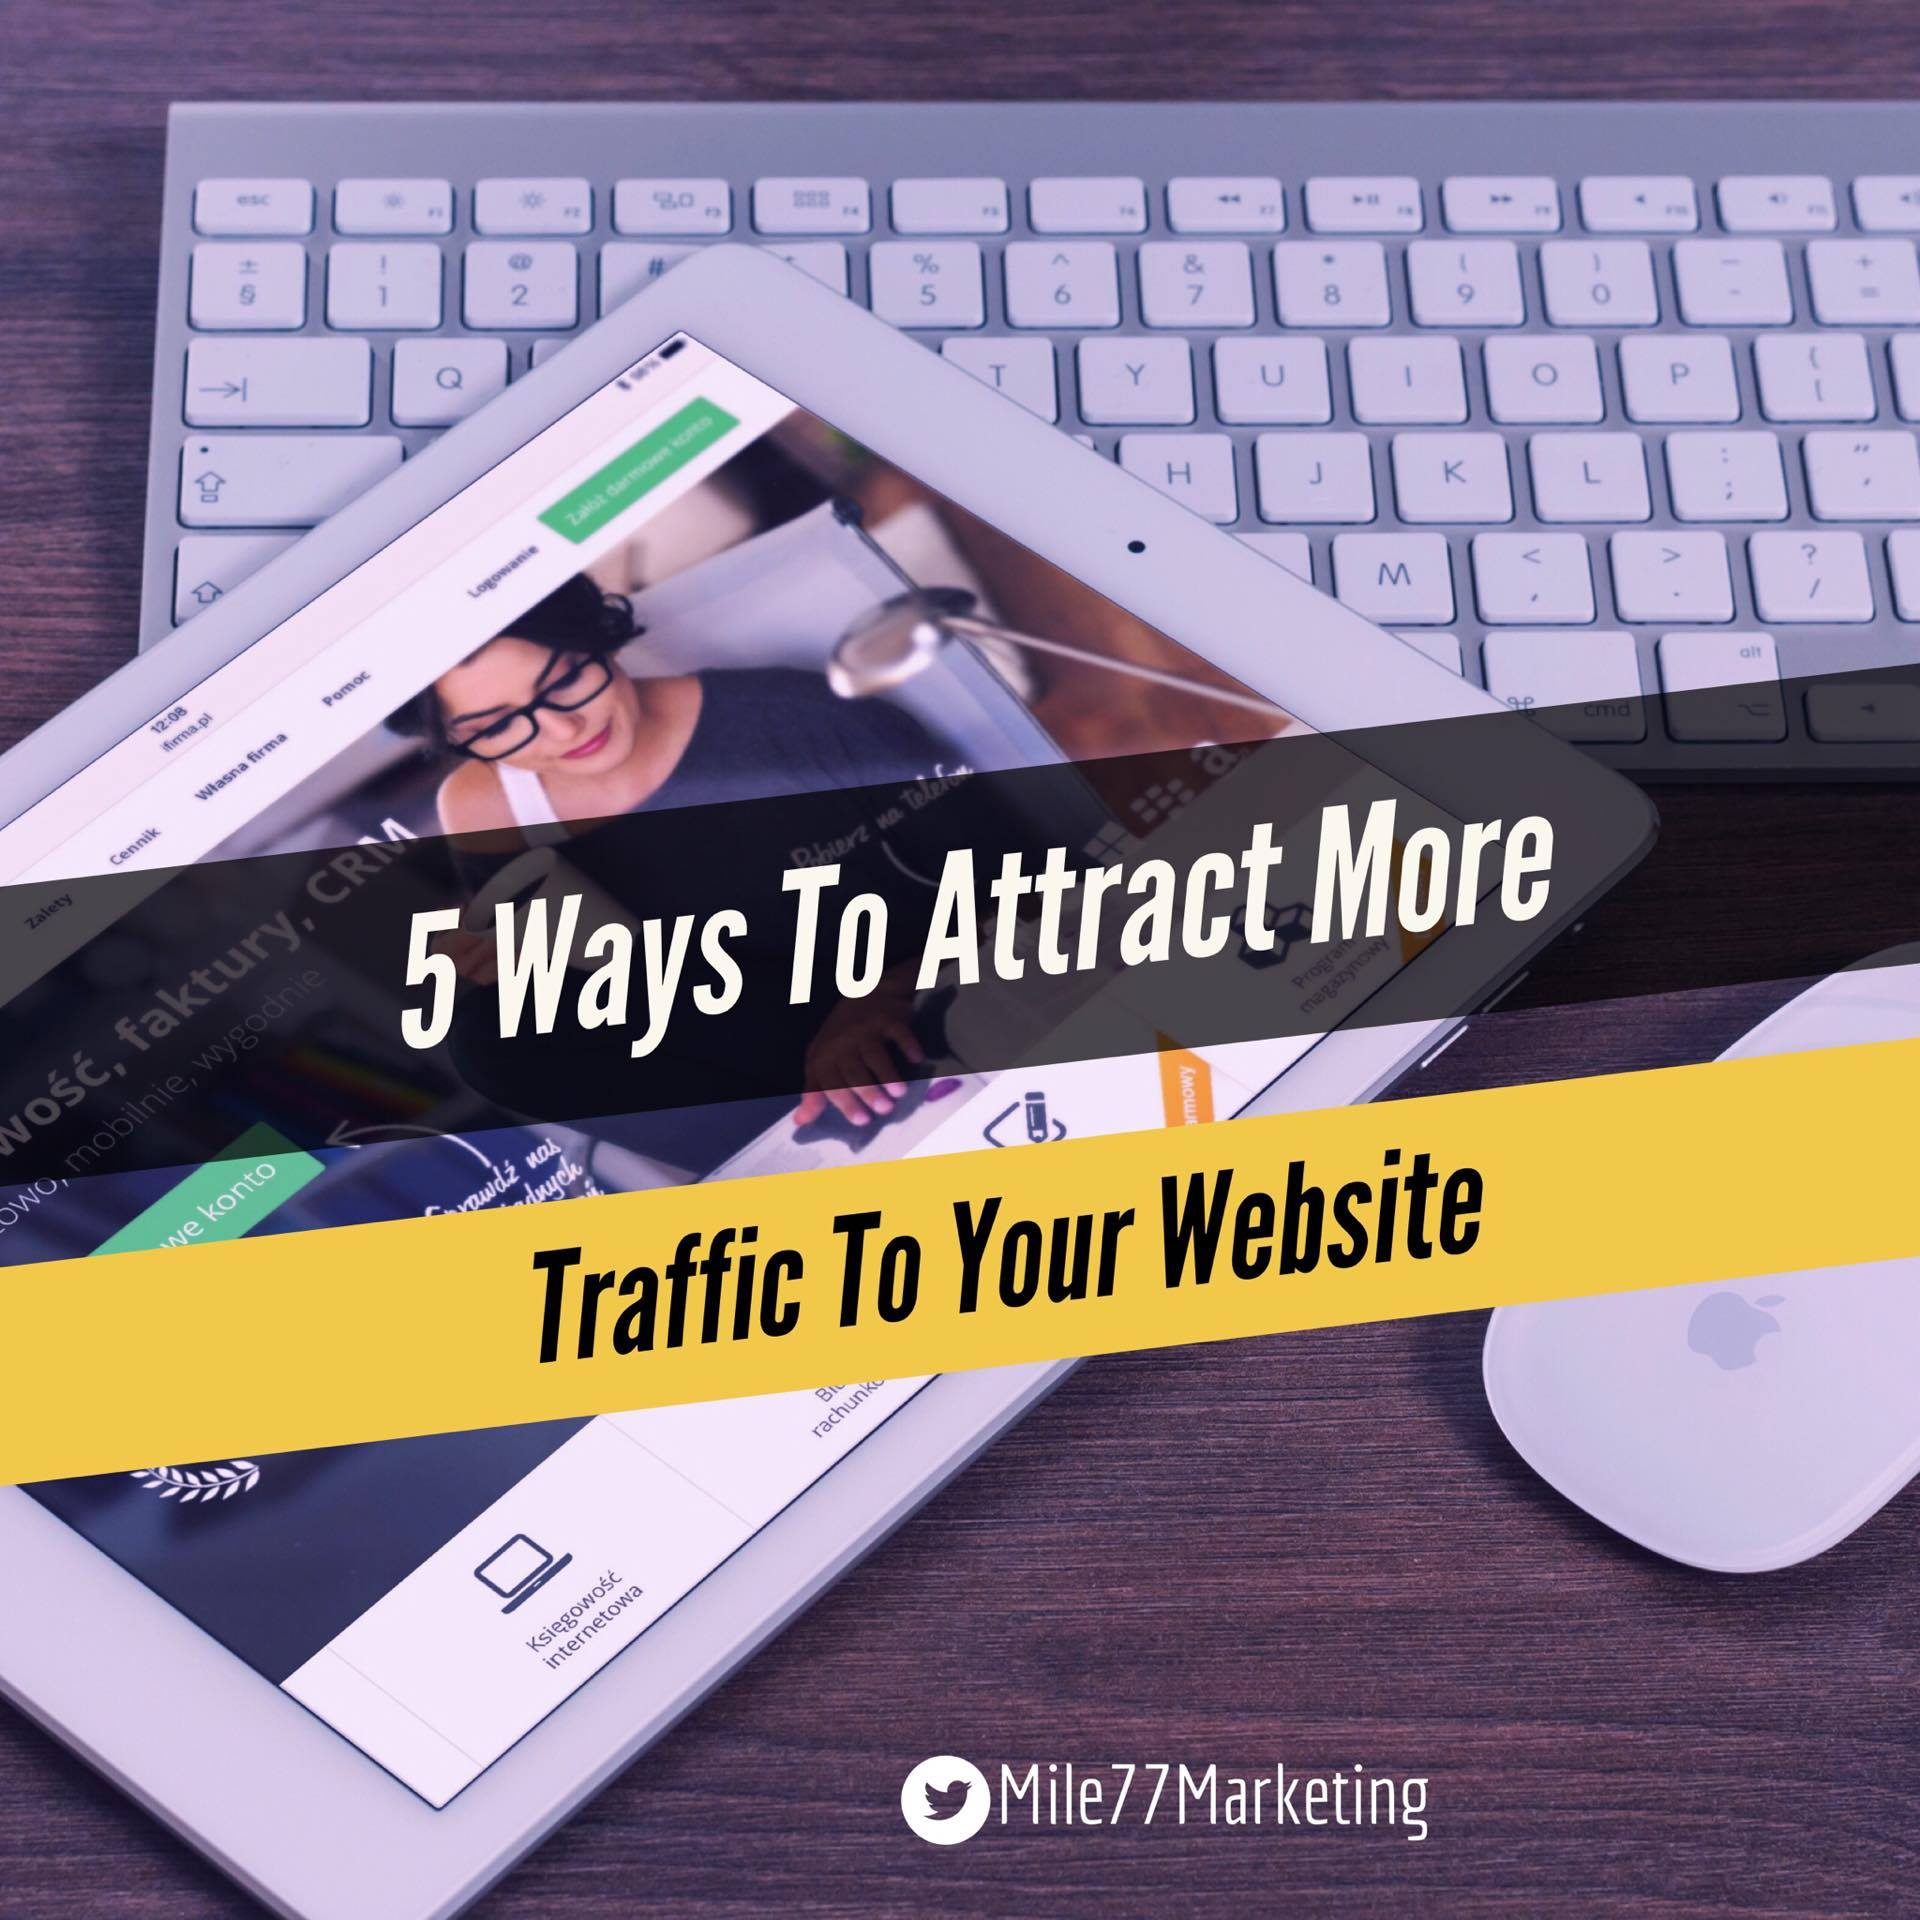 5 Ways To Attract More Traffic To Your Website